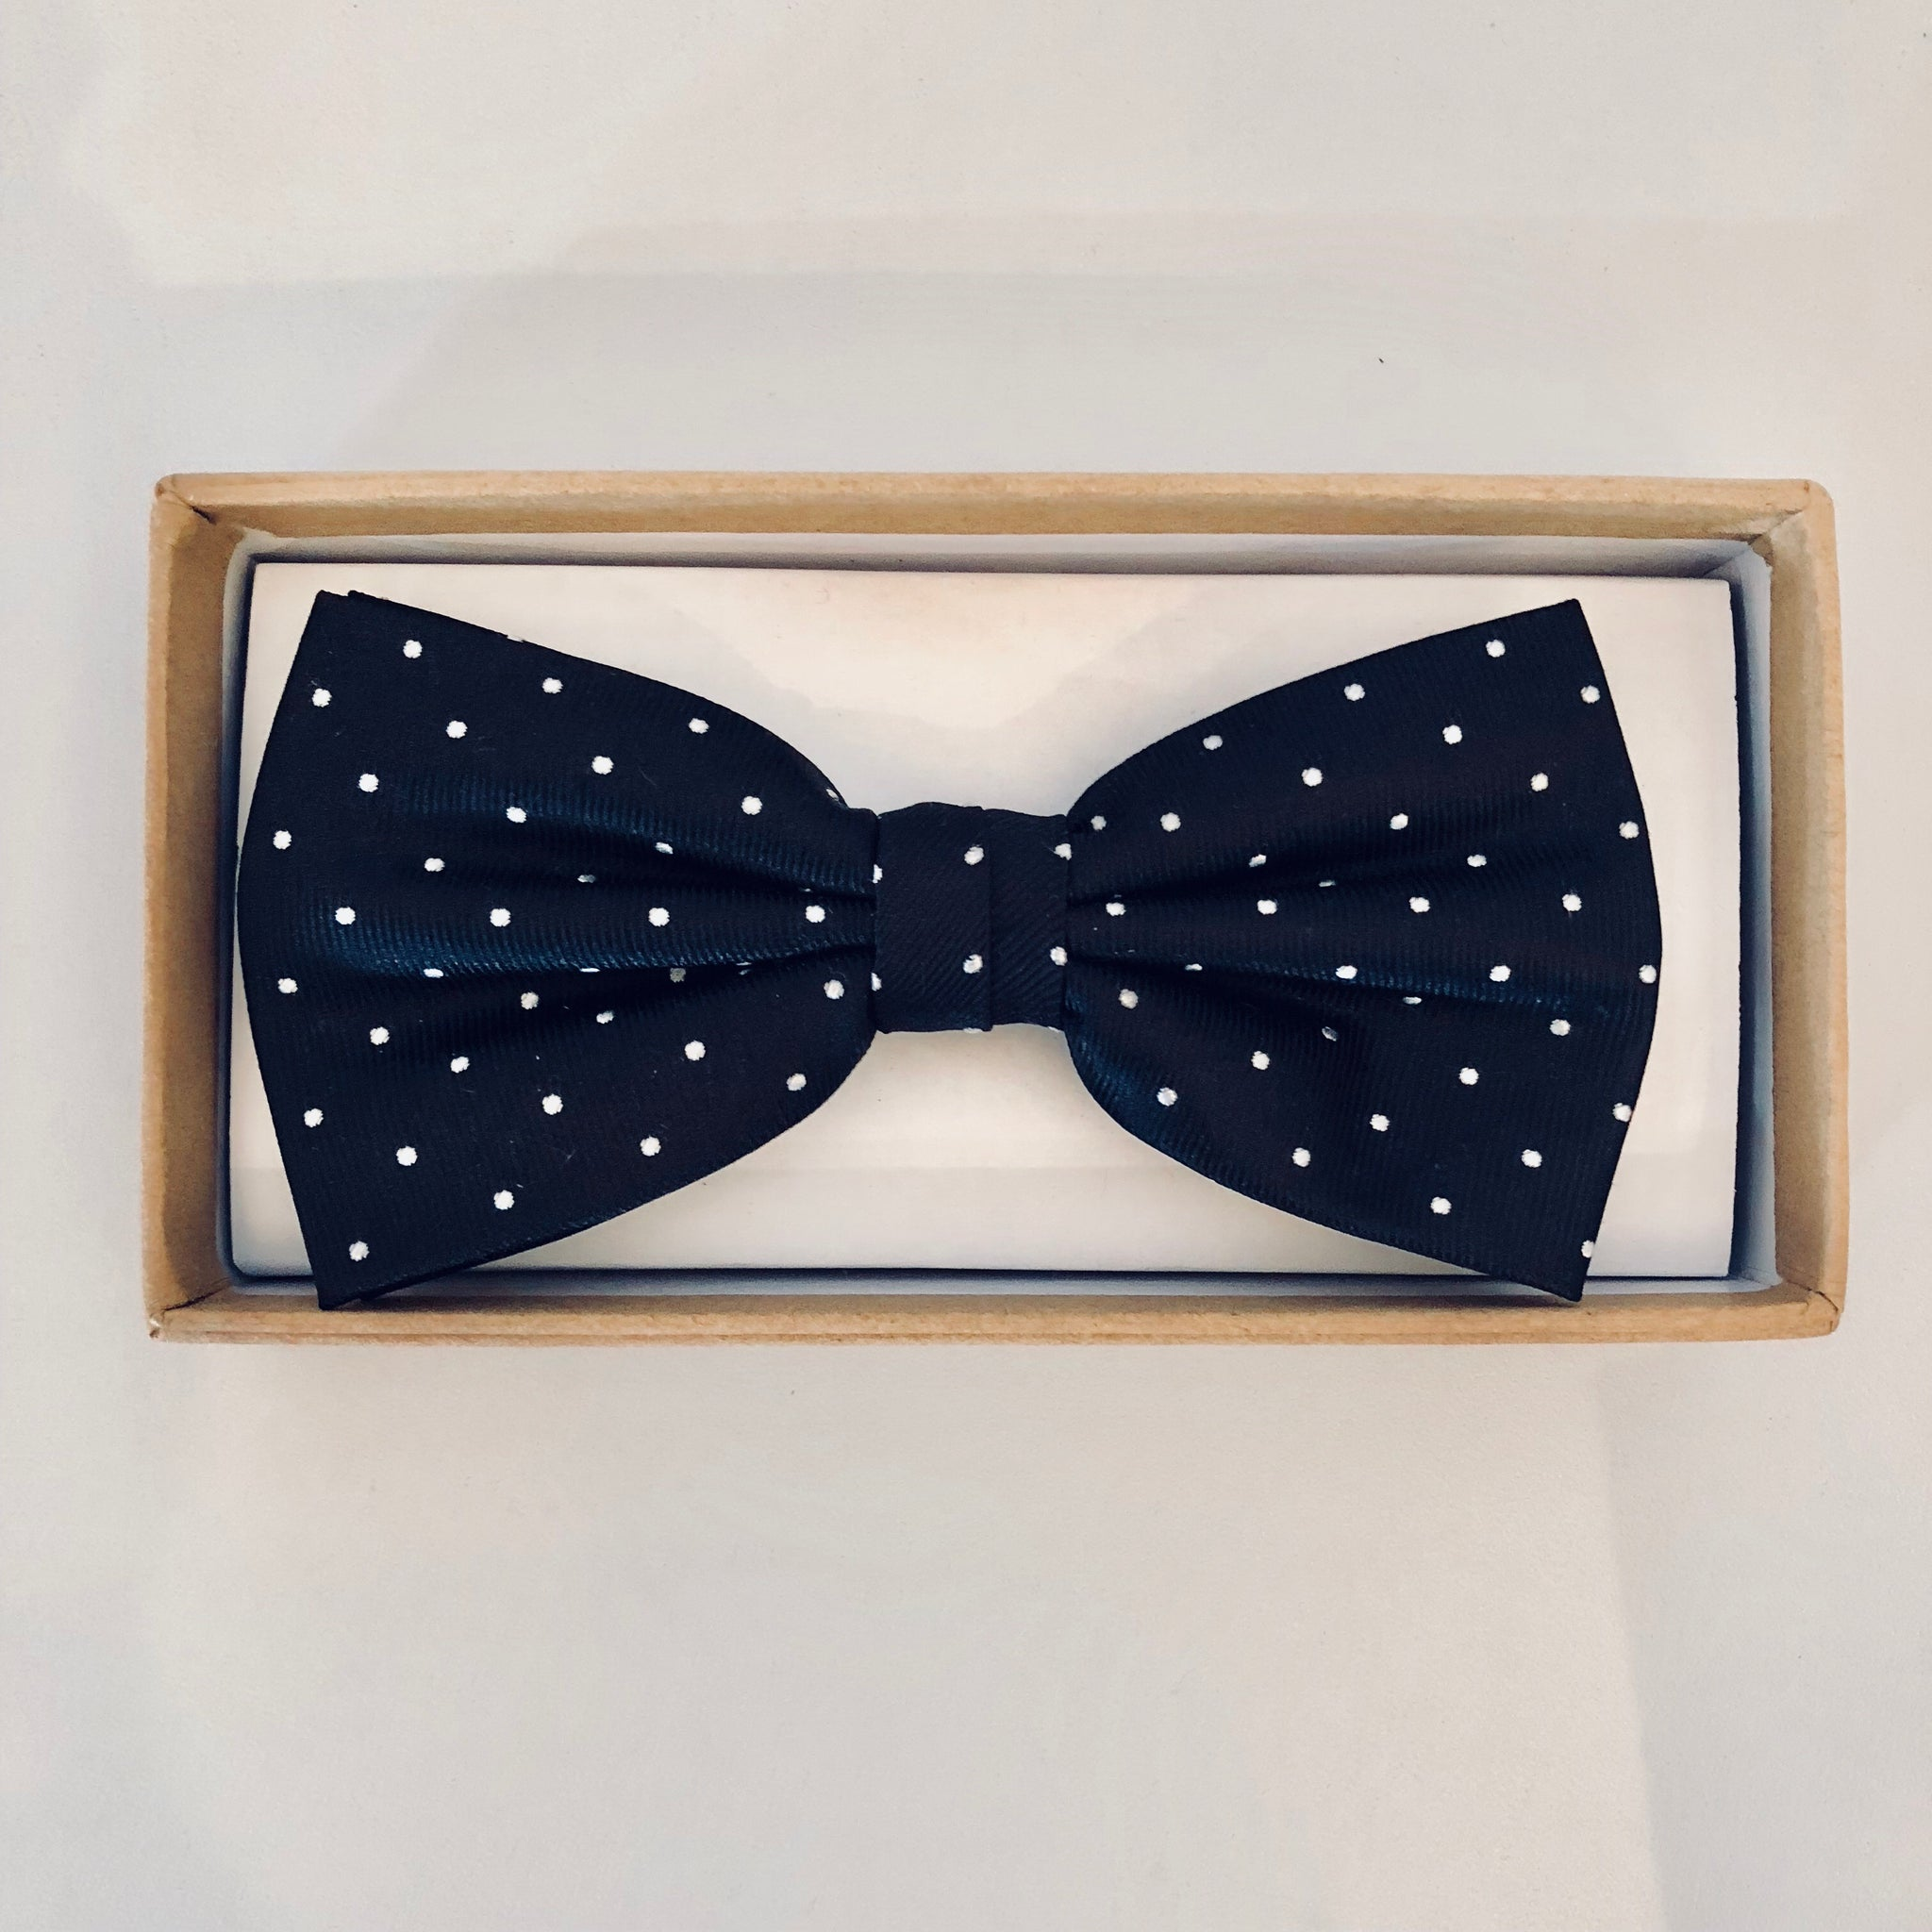 Ortc MAN - Black and White Polka Bow Tie